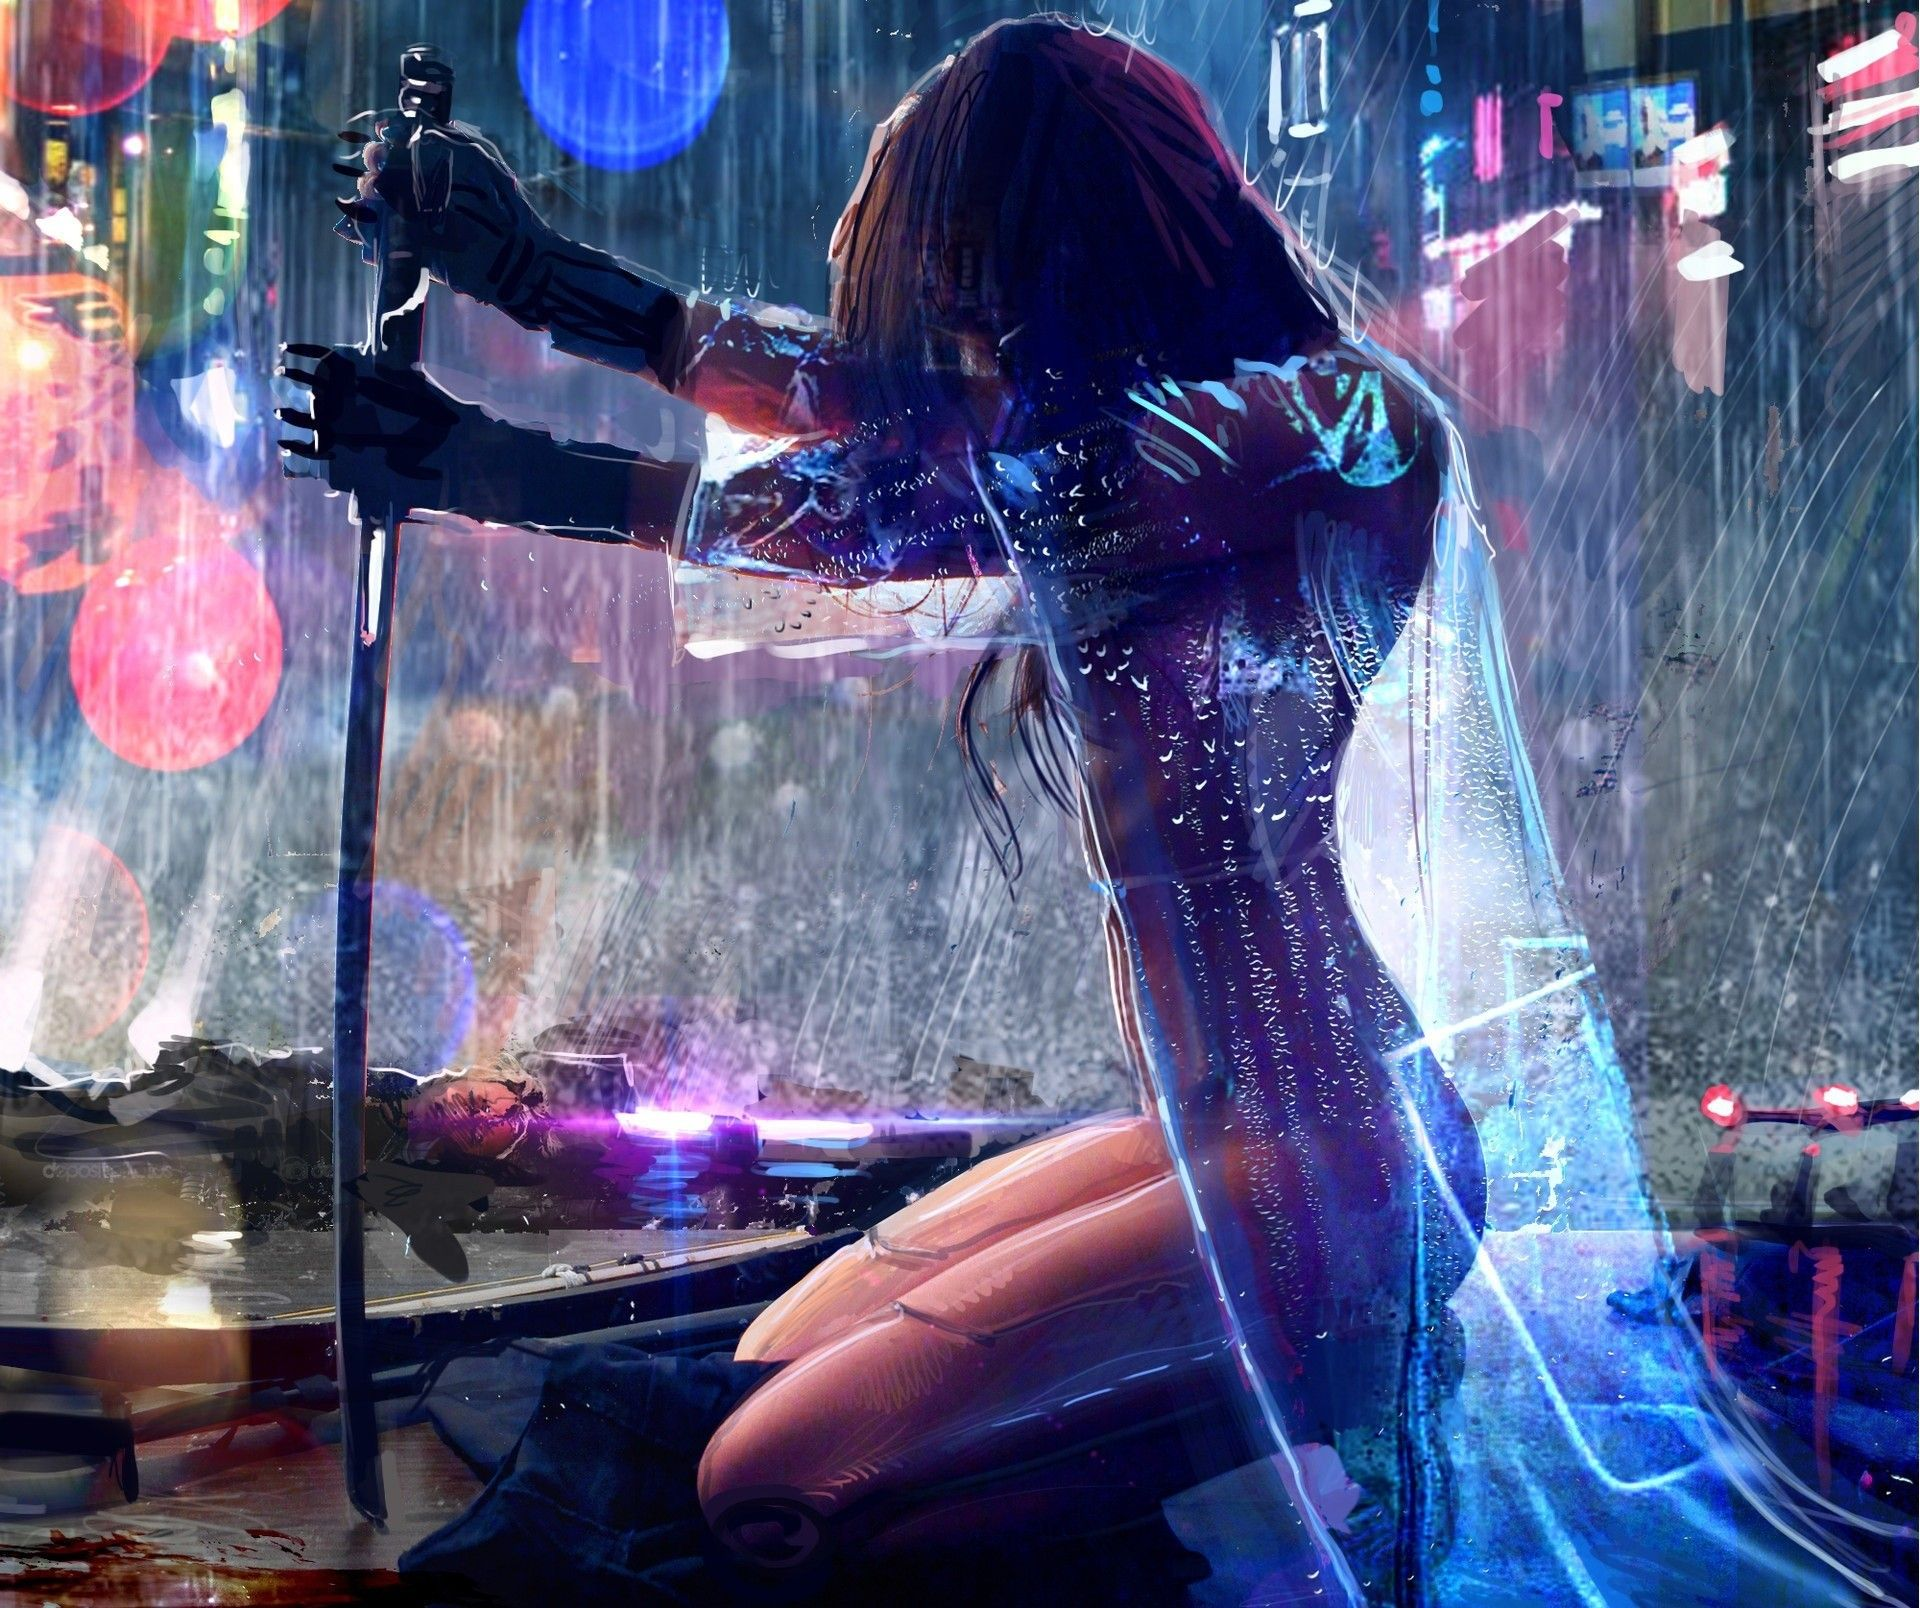 Women warrior artwork sword rain cyberpunk cyberpunk woman warrior women warrior artwork sword rain cyberpunk cyberpunk awesome desktop hd wallpaper voltagebd